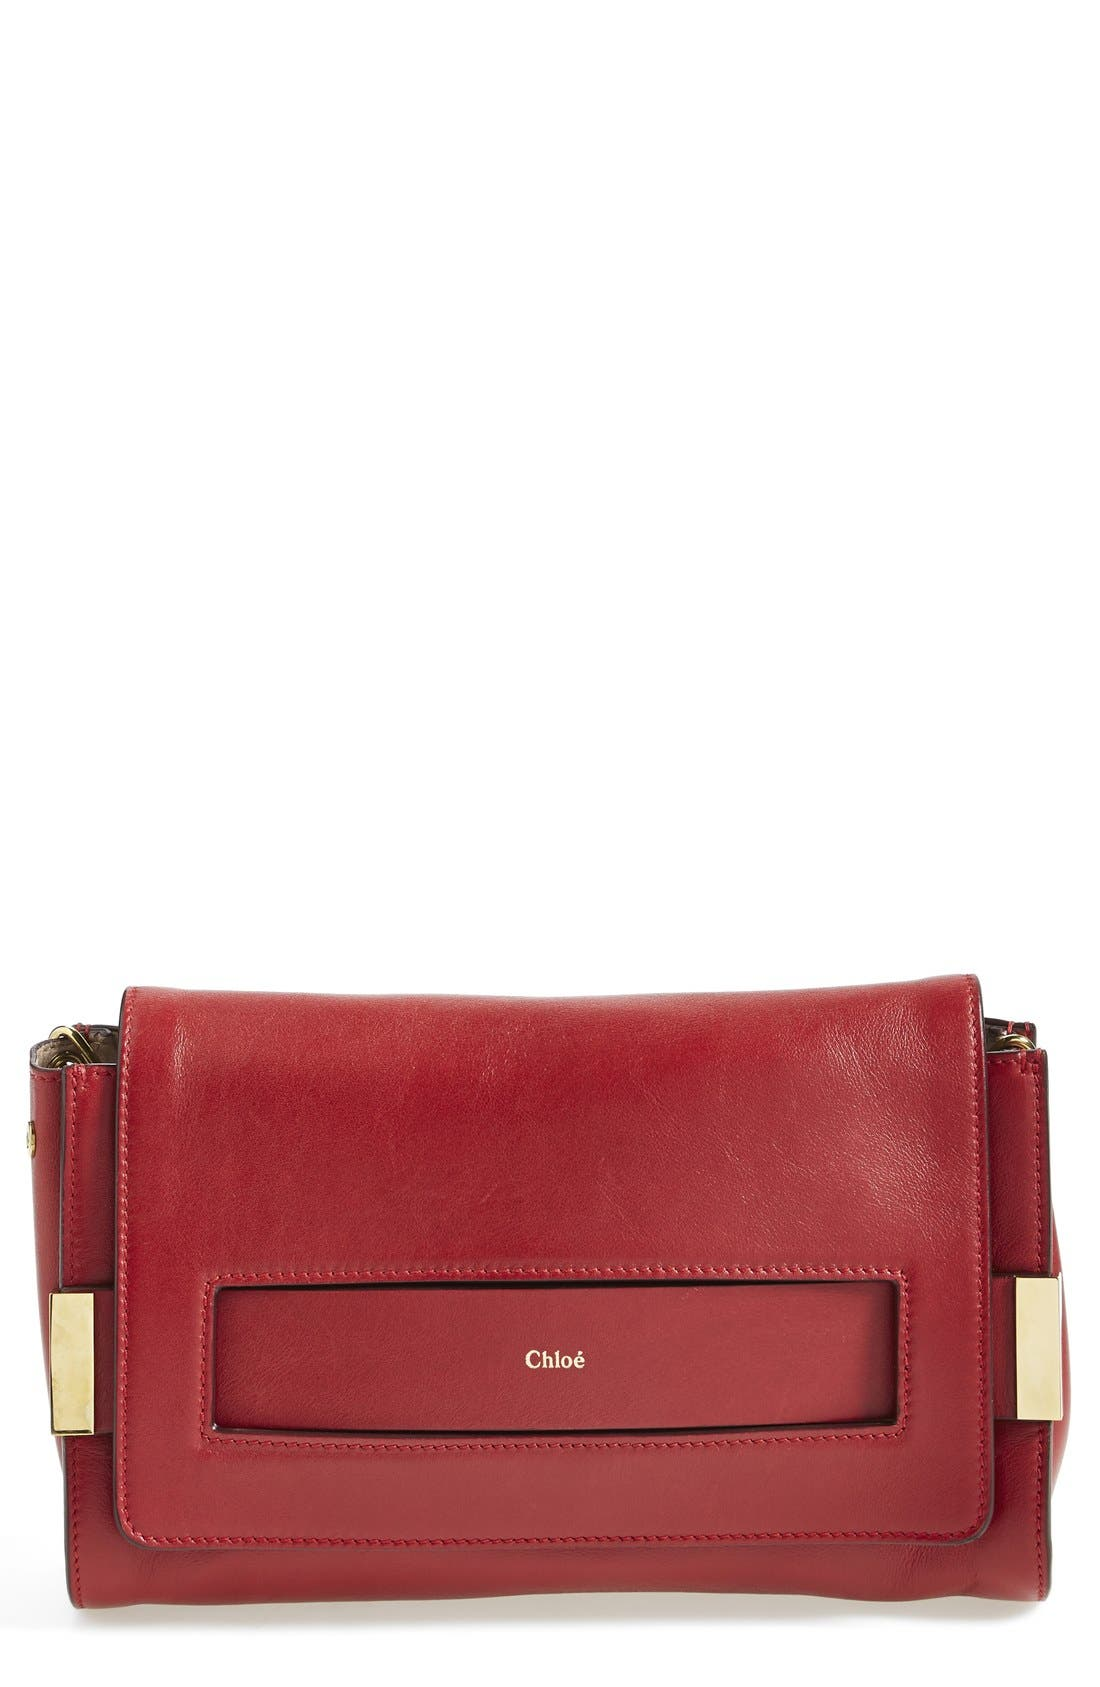 Main Image - Chloé 'Elle - Medium' Clutch